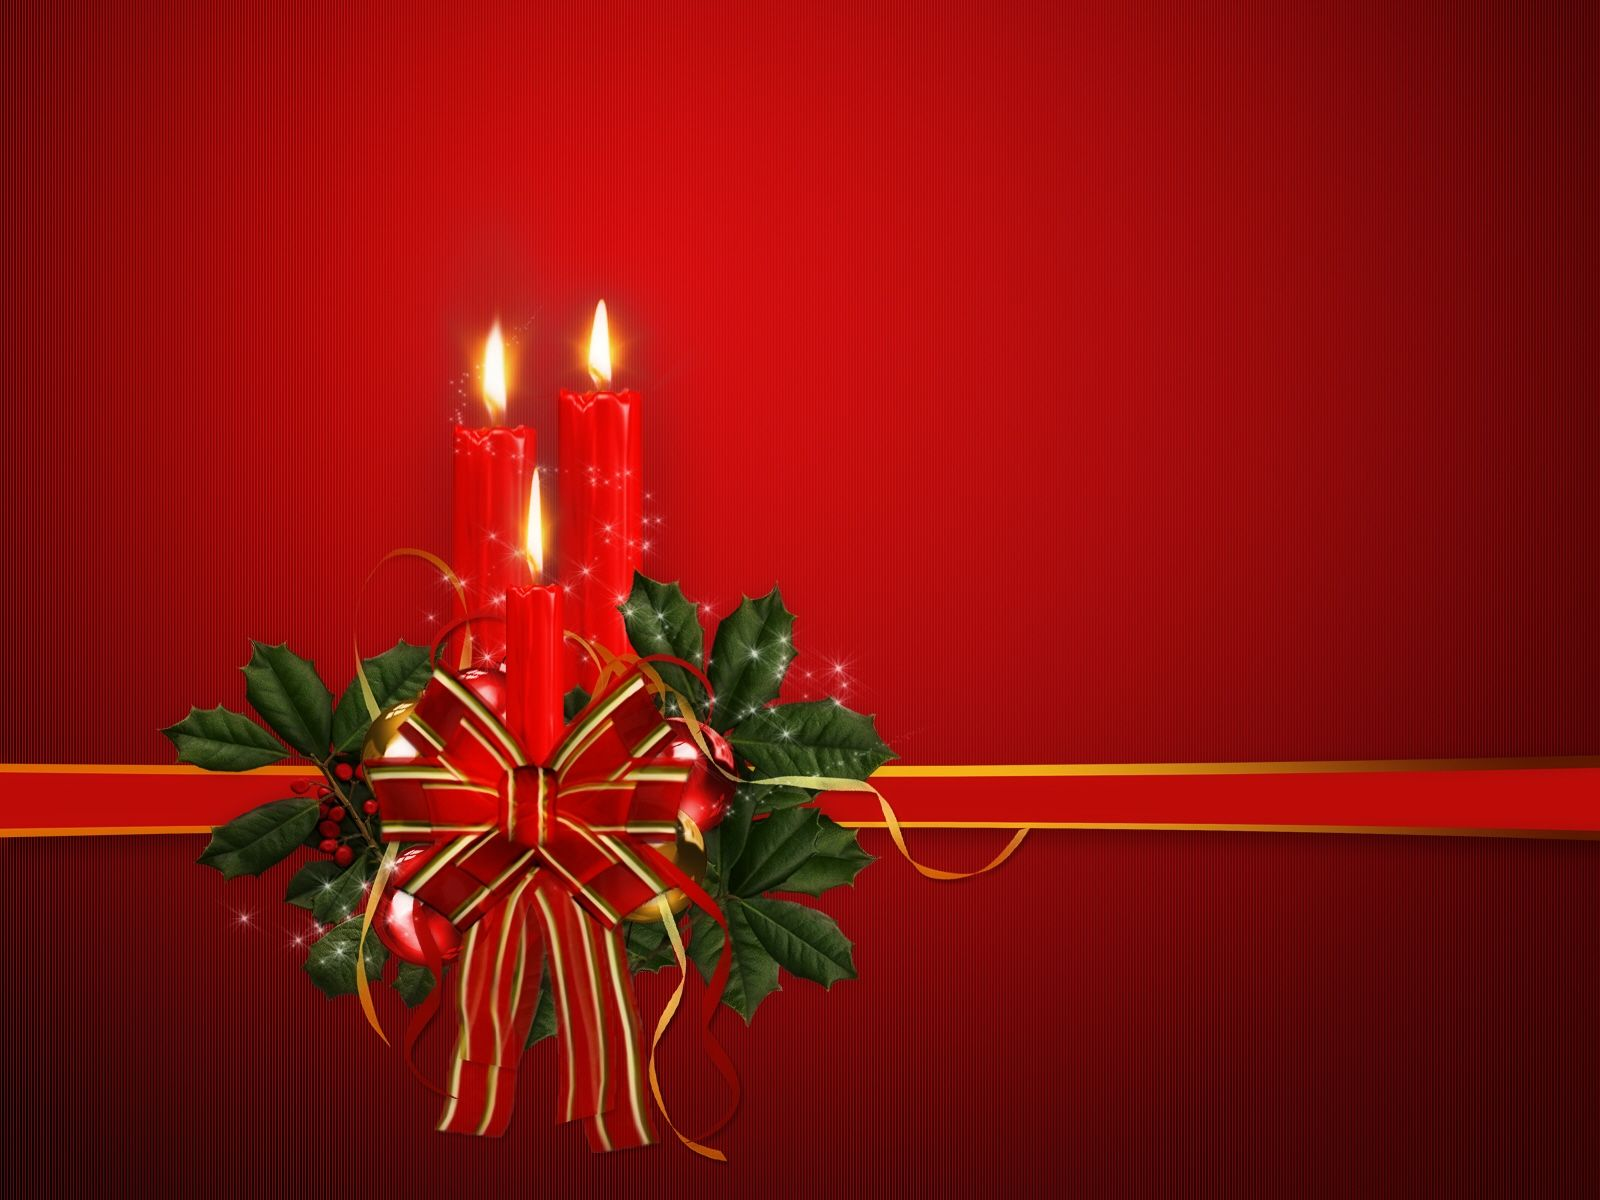 Christmas pics free also check our new year hd wallpapers